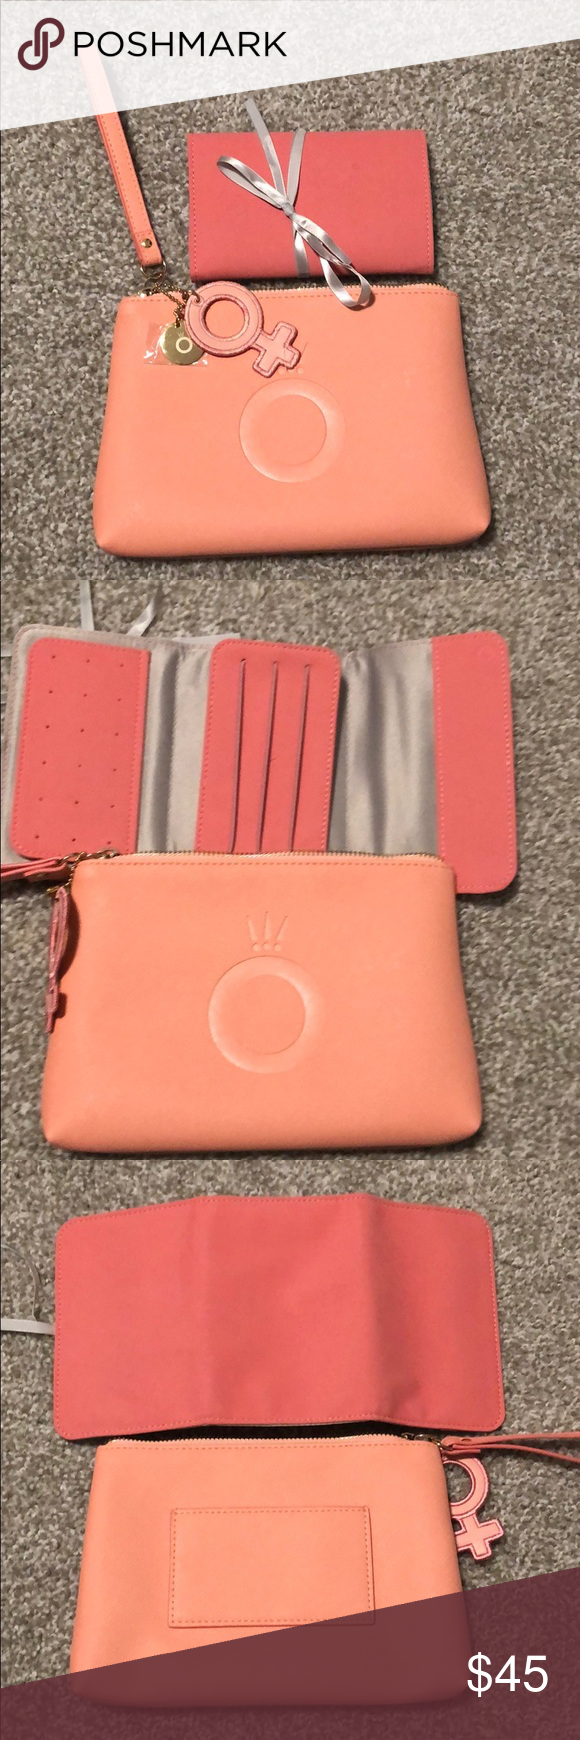 Pandora Me — Millie Bobby Brown Clutch and Wallet If you're a fan ...